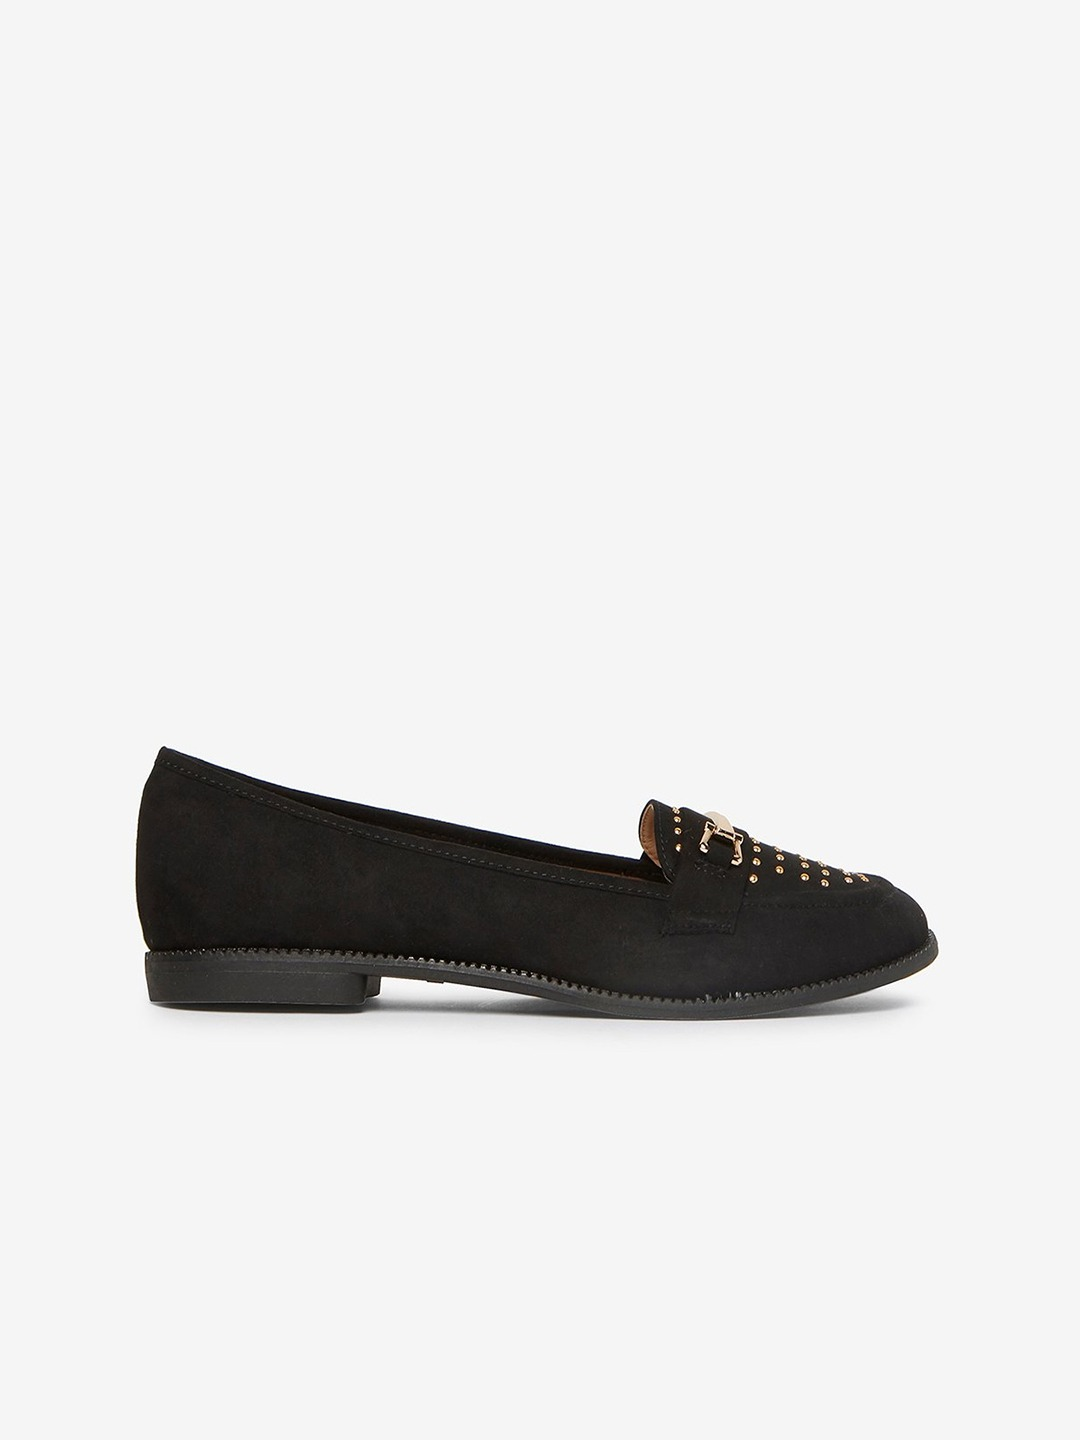 Black Wide Fit Loafers with Metallic Studs